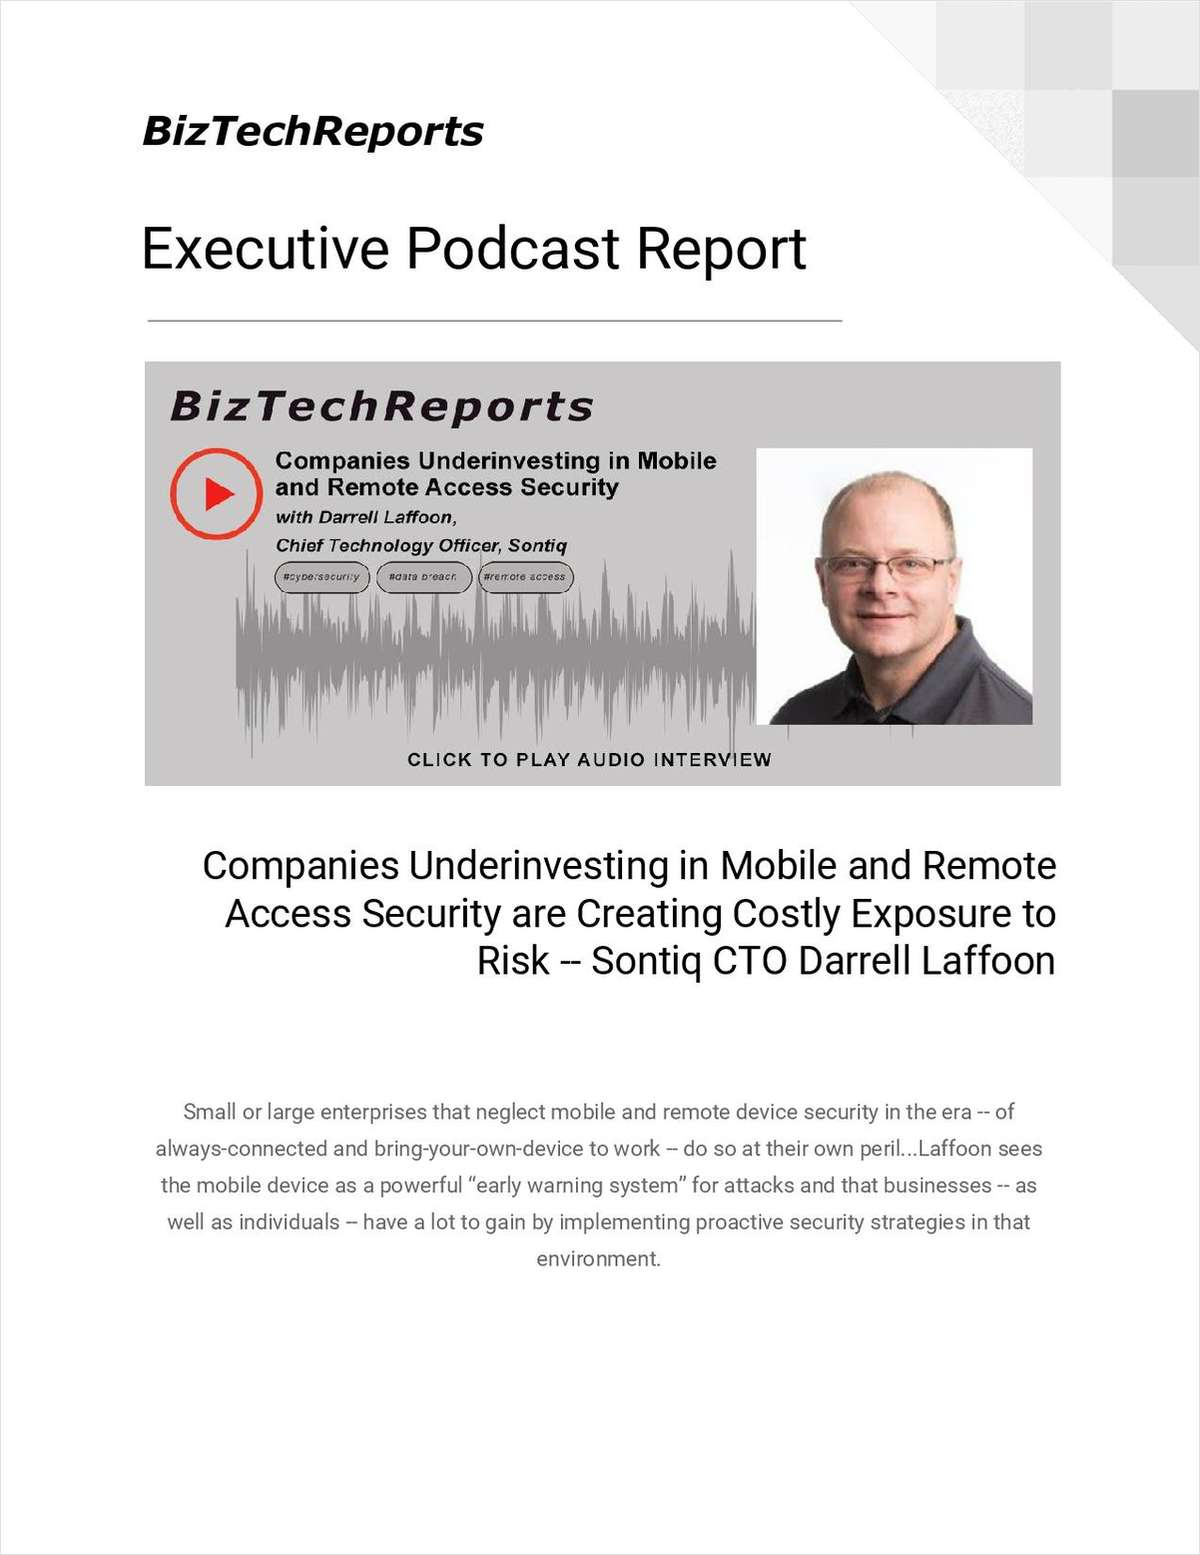 Companies Underinvesting in Mobile and Remote Access Security are Creating Costly Exposure to Risk